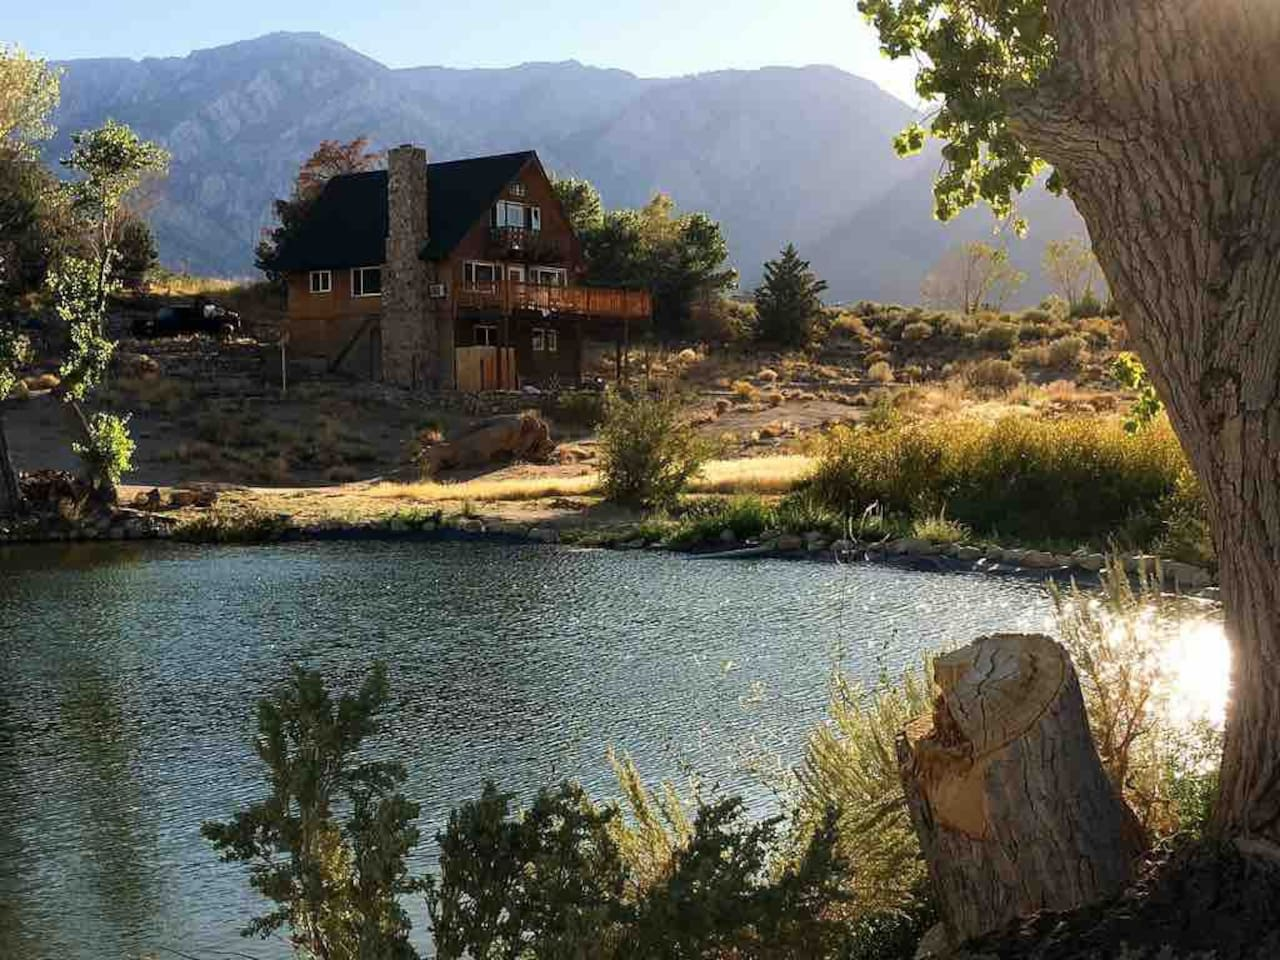 View of House, Lake, and Sierras behind.  House sits on rim, visible from Diaz lake on Hwy 395, below.